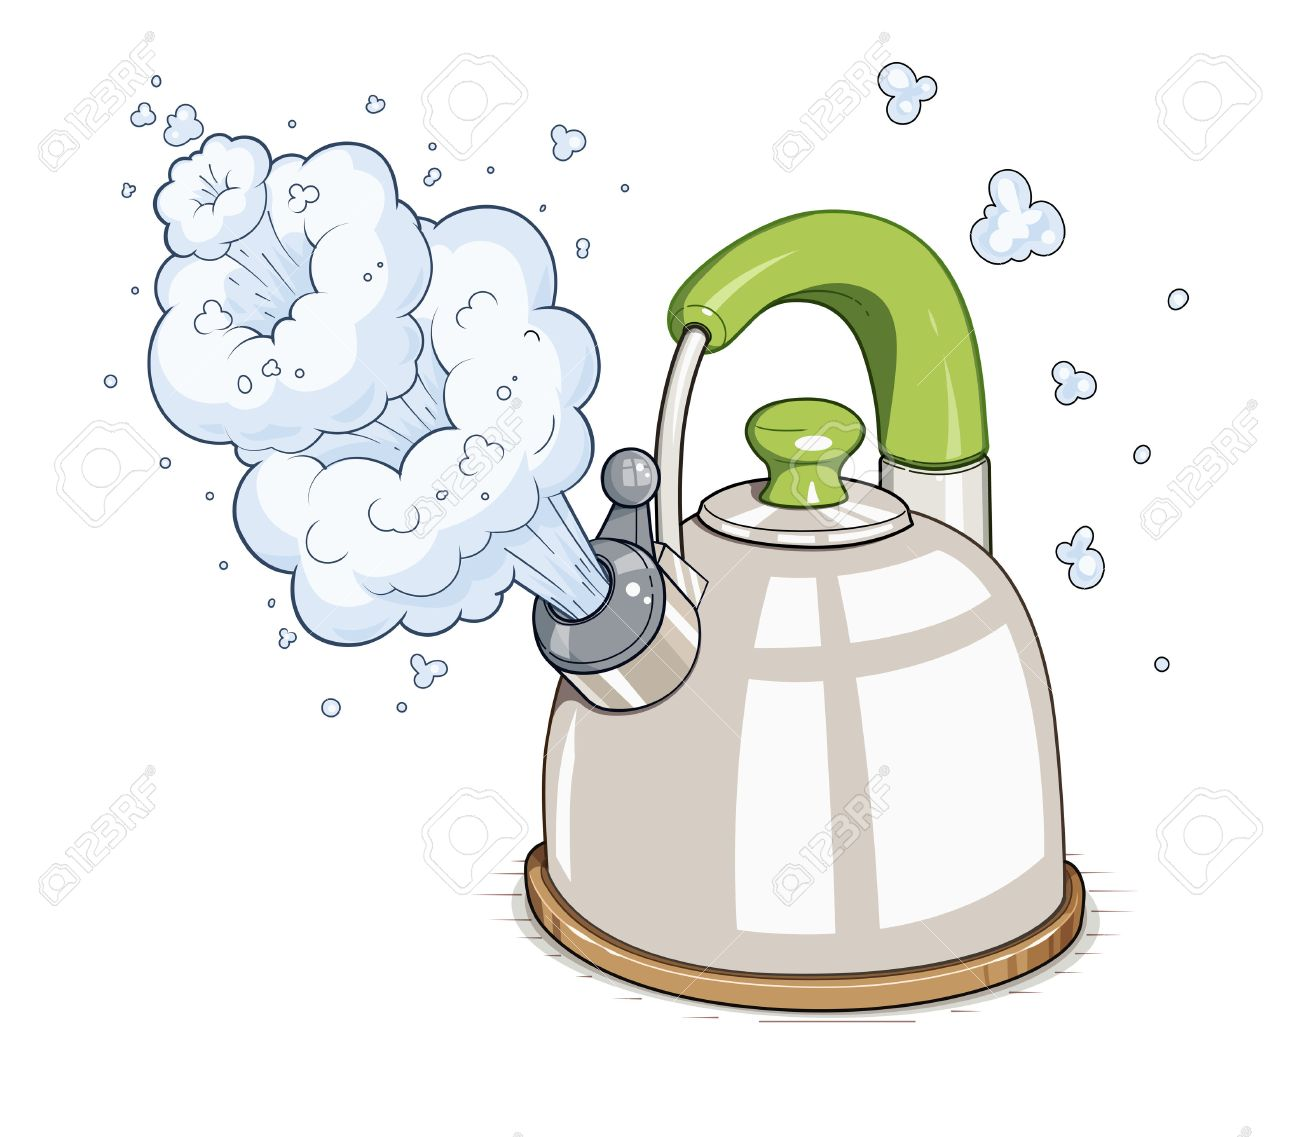 Kettle boil. illustration. Isolated on white background.